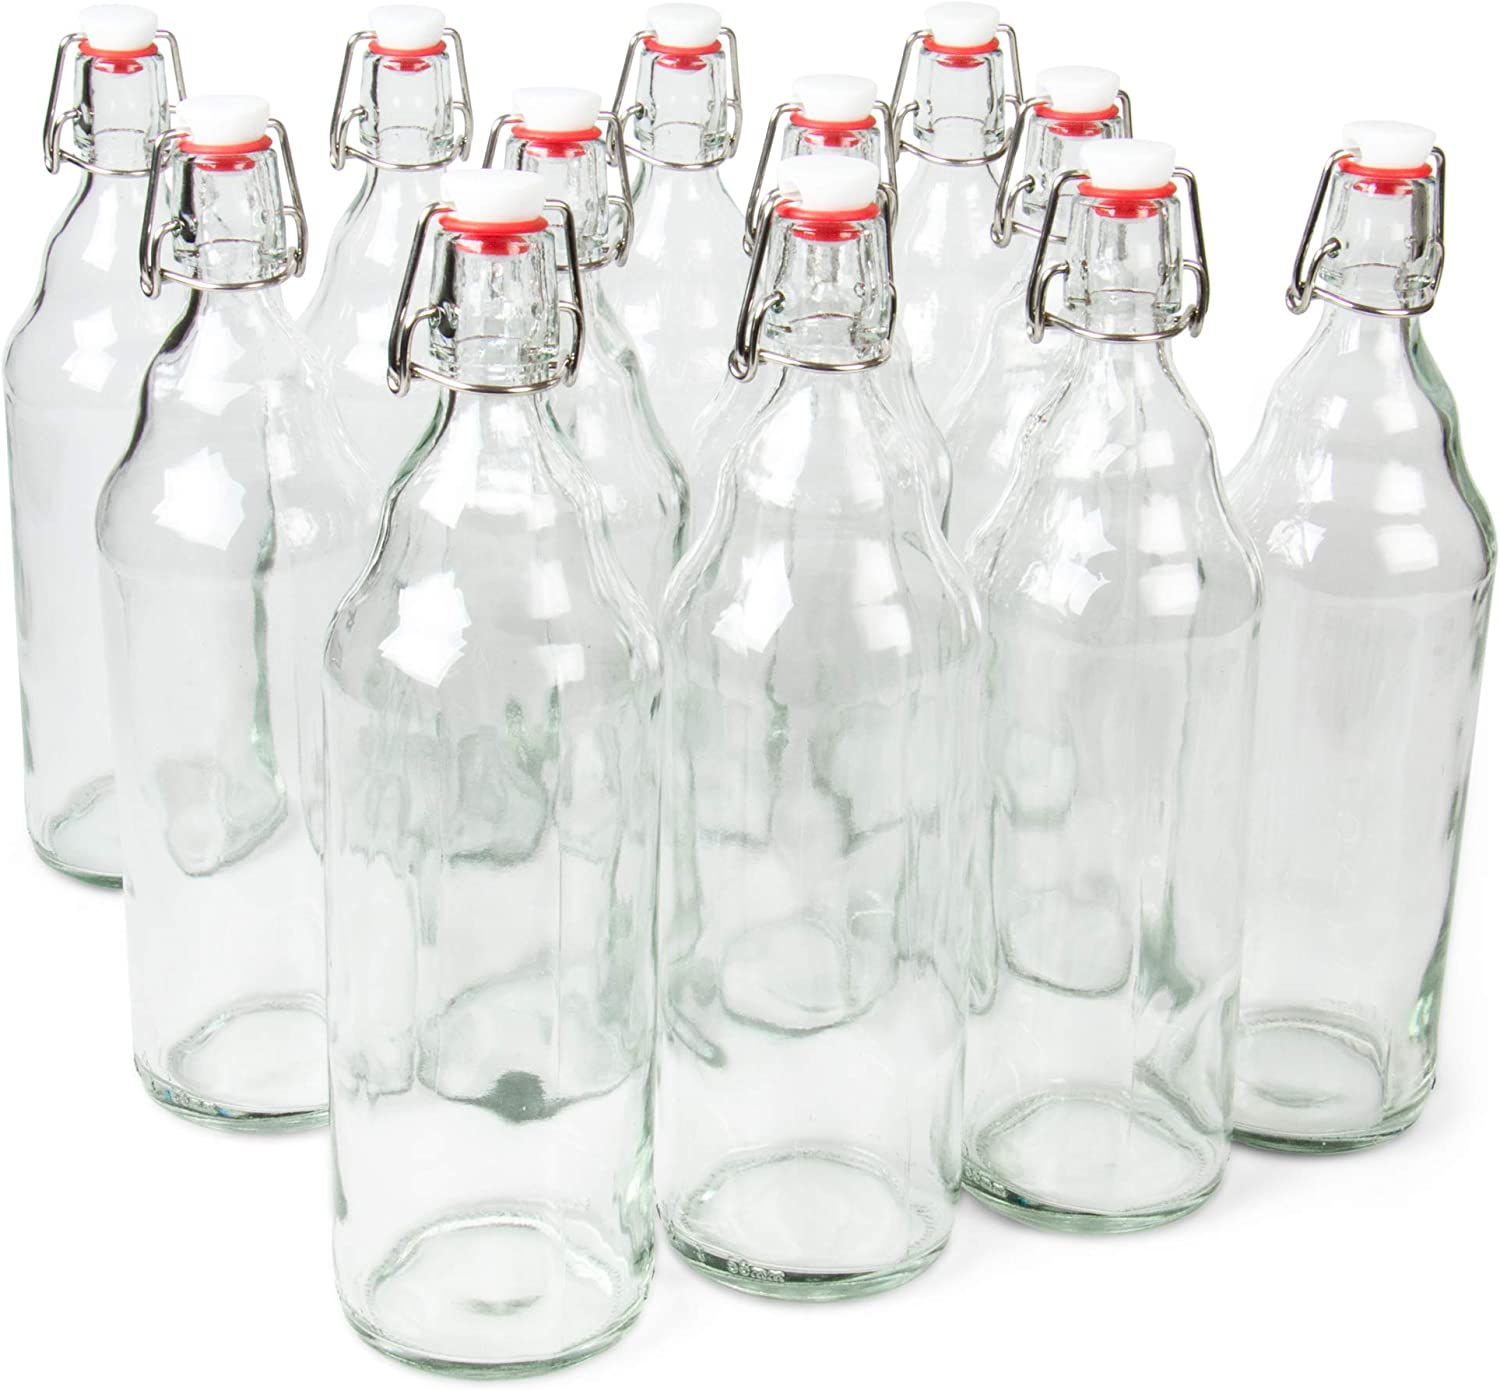 33 oz. Clear Glass Grolsch Beer Bottles, Quart Size – Airtight Seal with Swing Top/Flip Top - Supplies for Home Brewing & Fermenting of Alcohol, Kombucha Tea, Wine, Homemade Soda (6-pack)